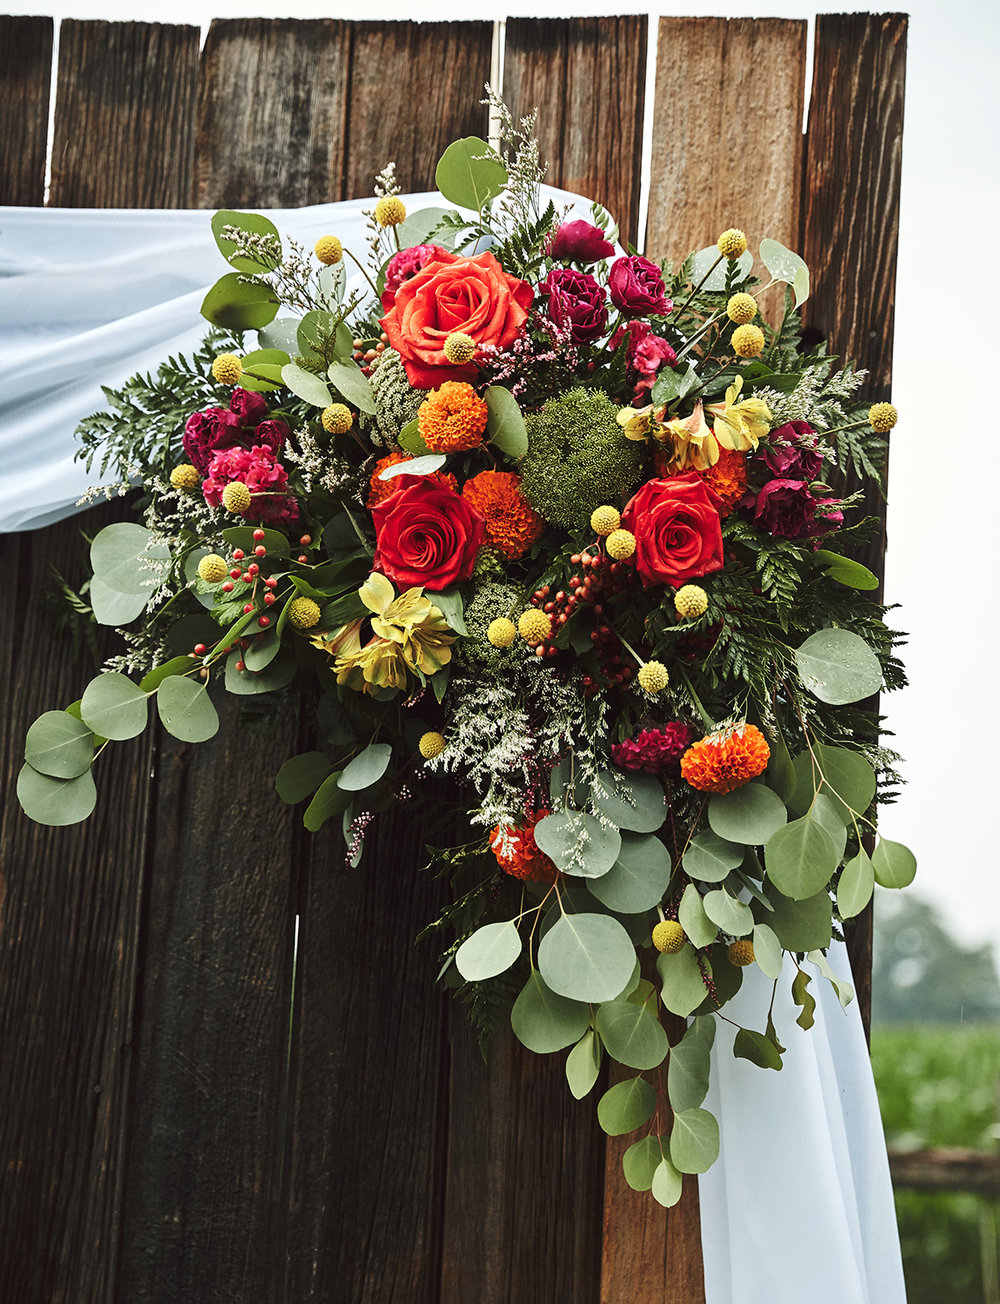 170722_Pennsylvania_RusticBackyardWedding_By_BriJohnsonWeddings_0036.jpg